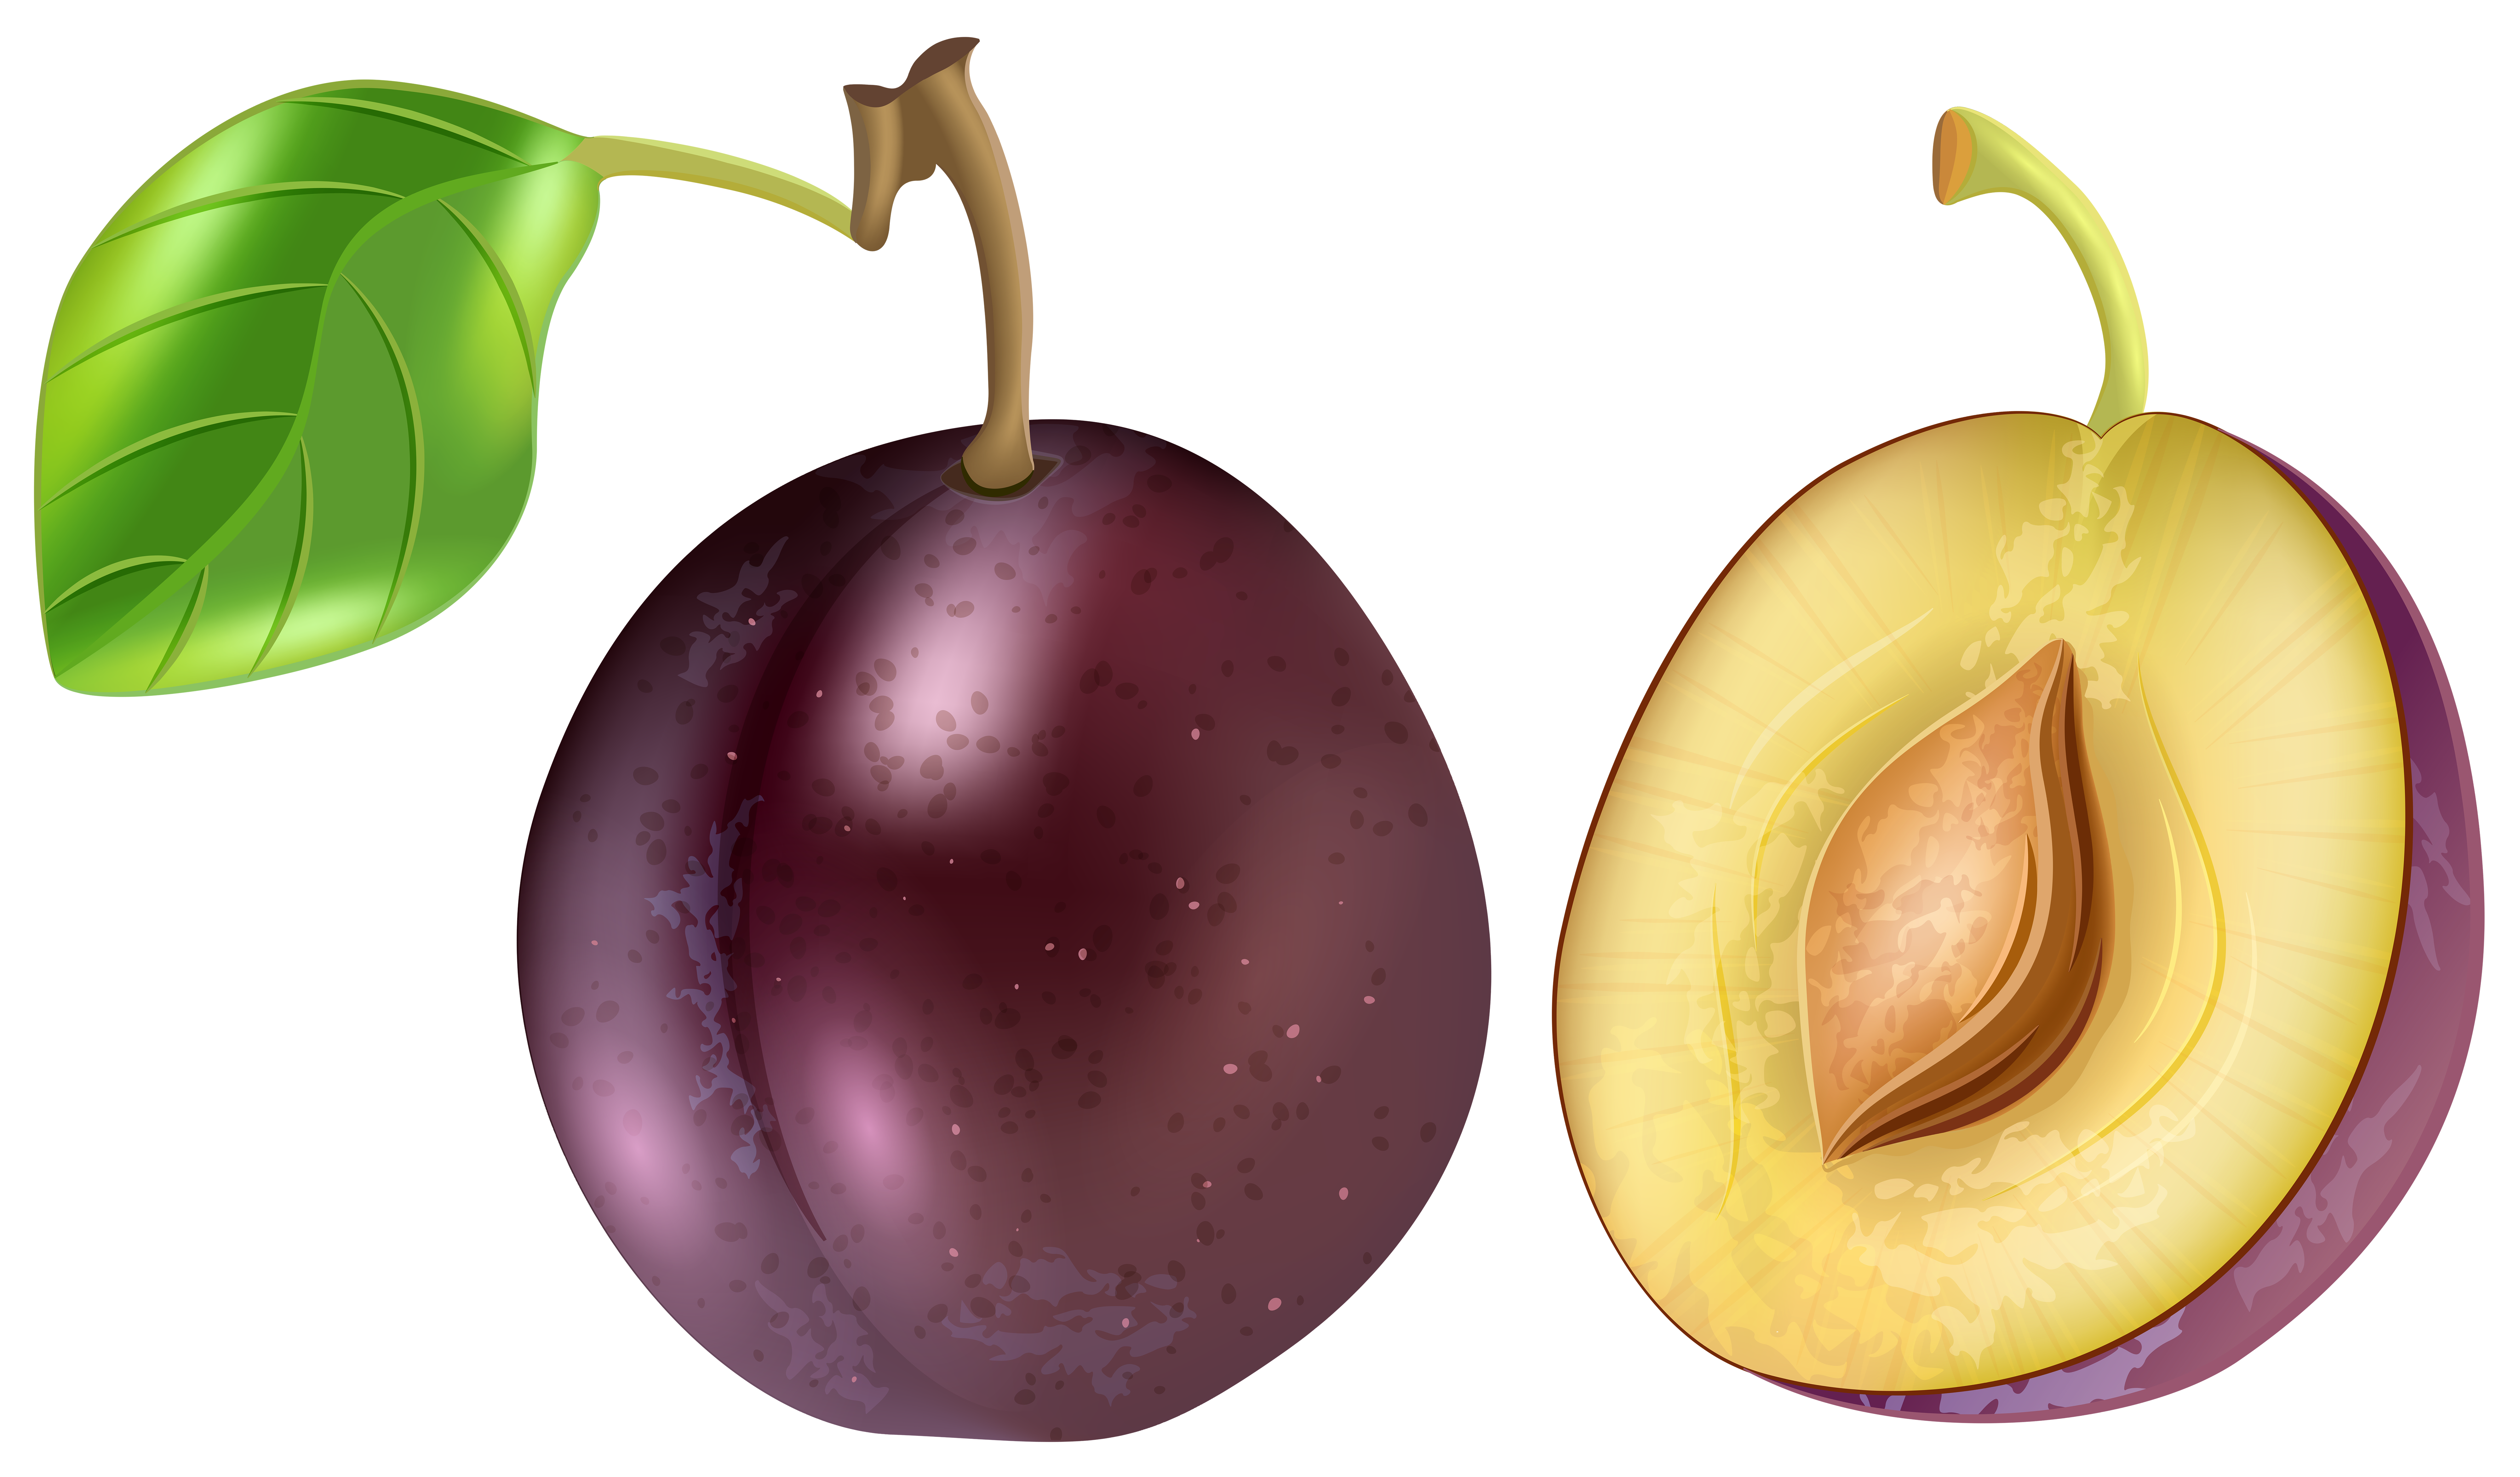 Plum Transparent Png Clip Art Image Gallery Yopriceville High Quality Images And Transparent Png Free Clipart Fruit Artwork Art Images Free Clip Art